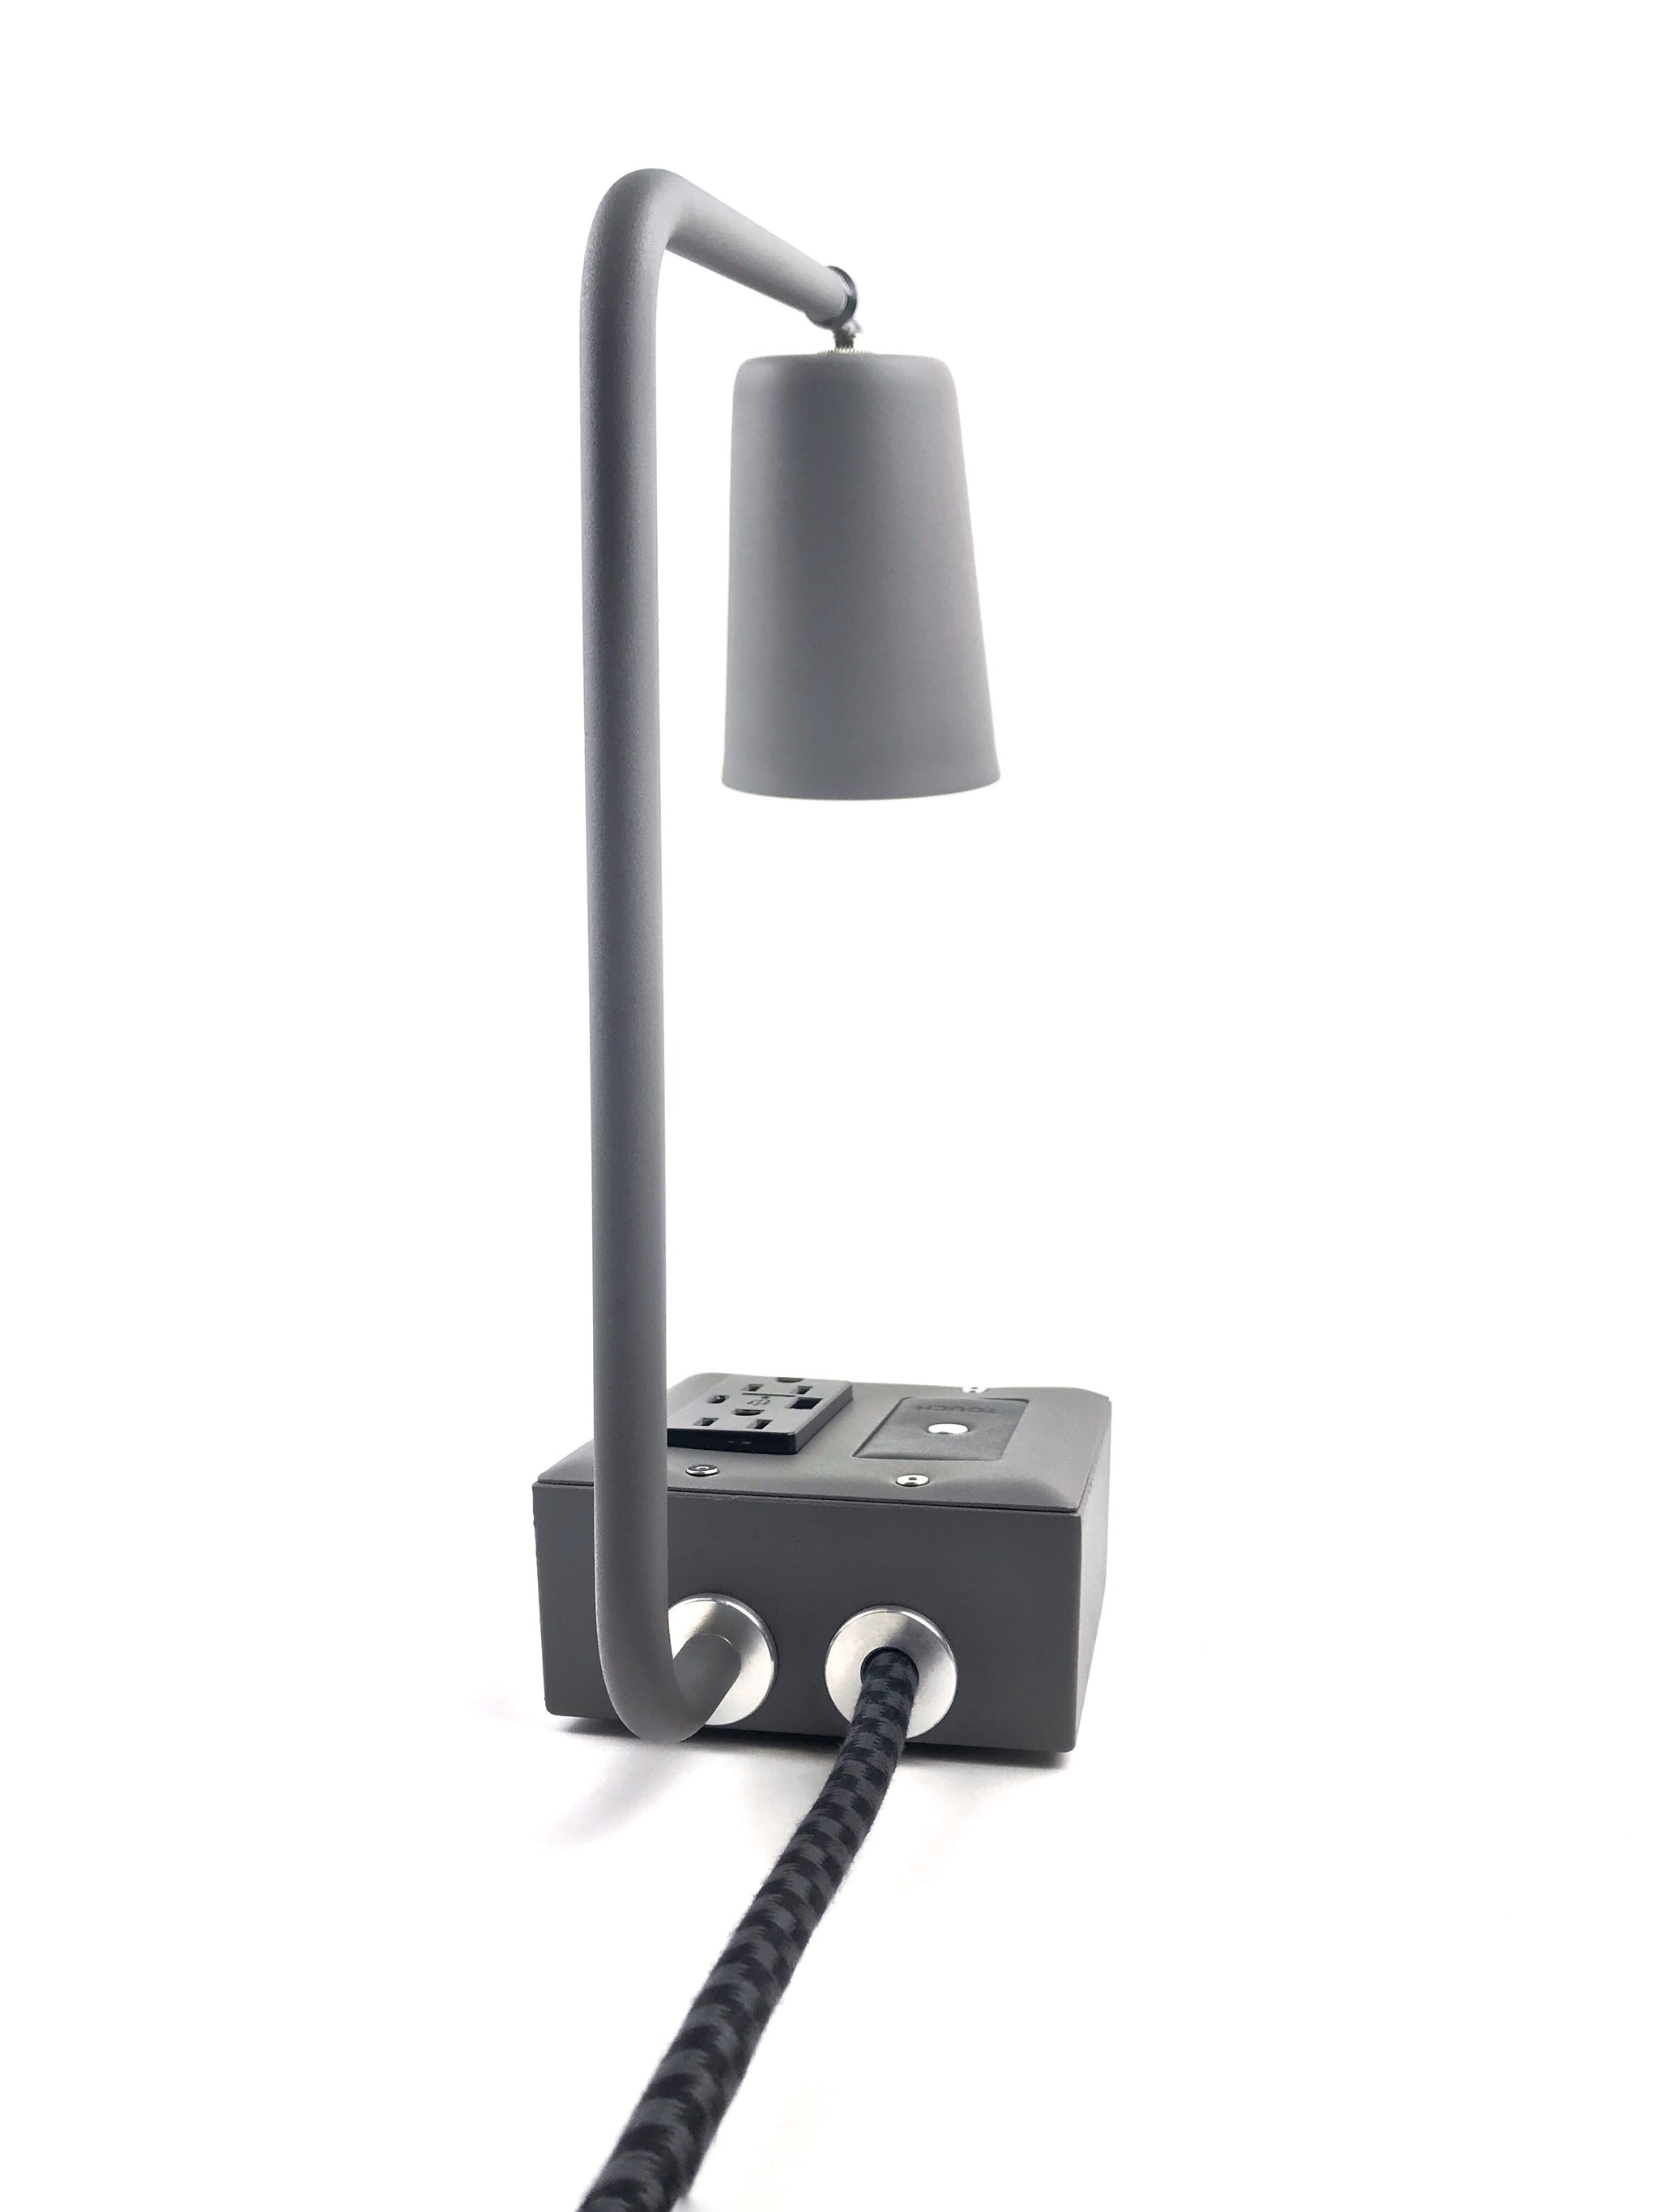 JAX Touch Smart USBC Surge-Protected Task Lamp Humboldt Fog Gray